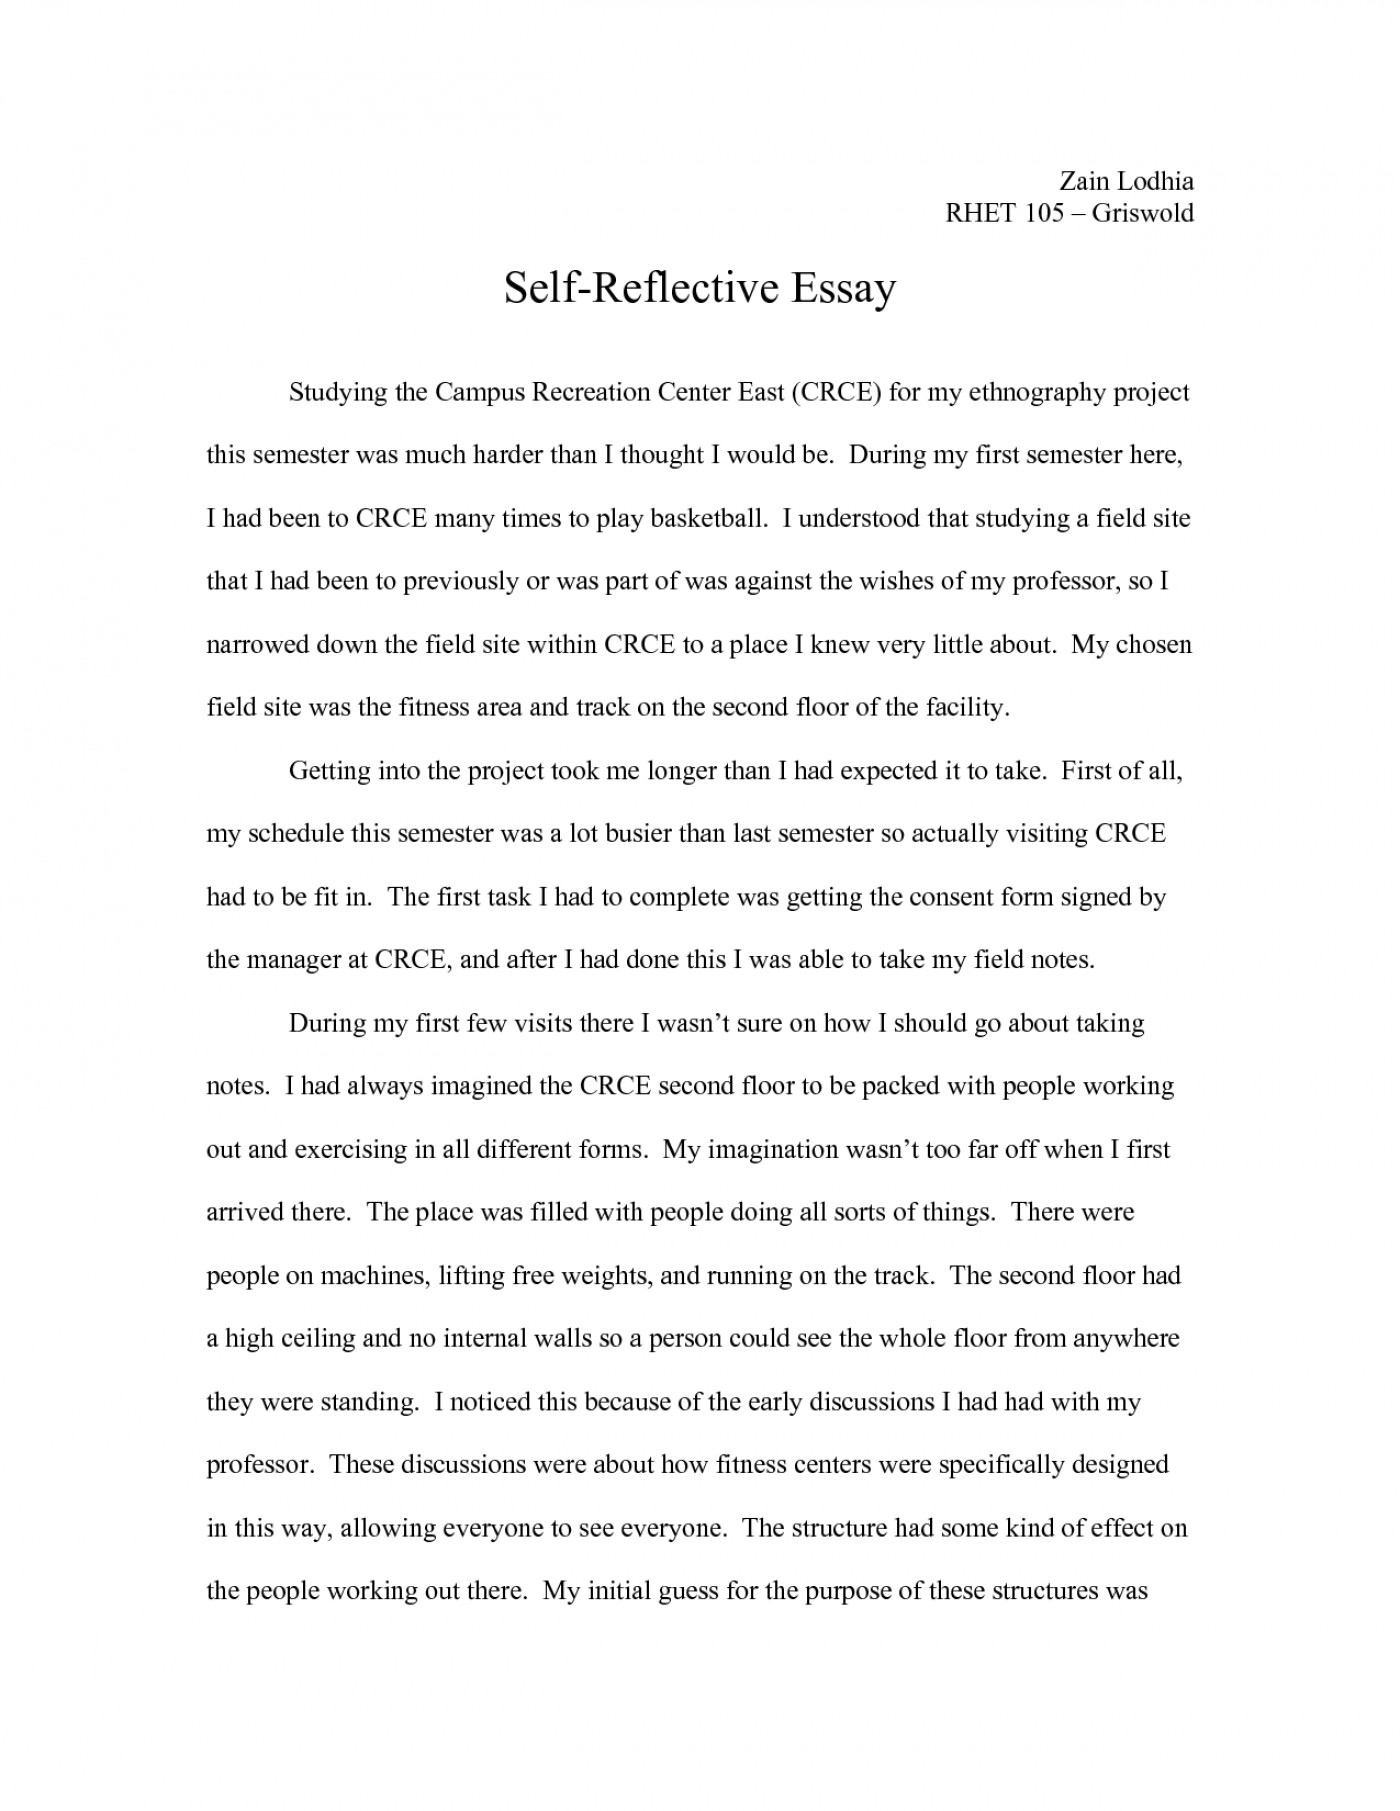 018 Qal0pwnf46 Free English Essays On Different Topics Essay Dreaded In 1400